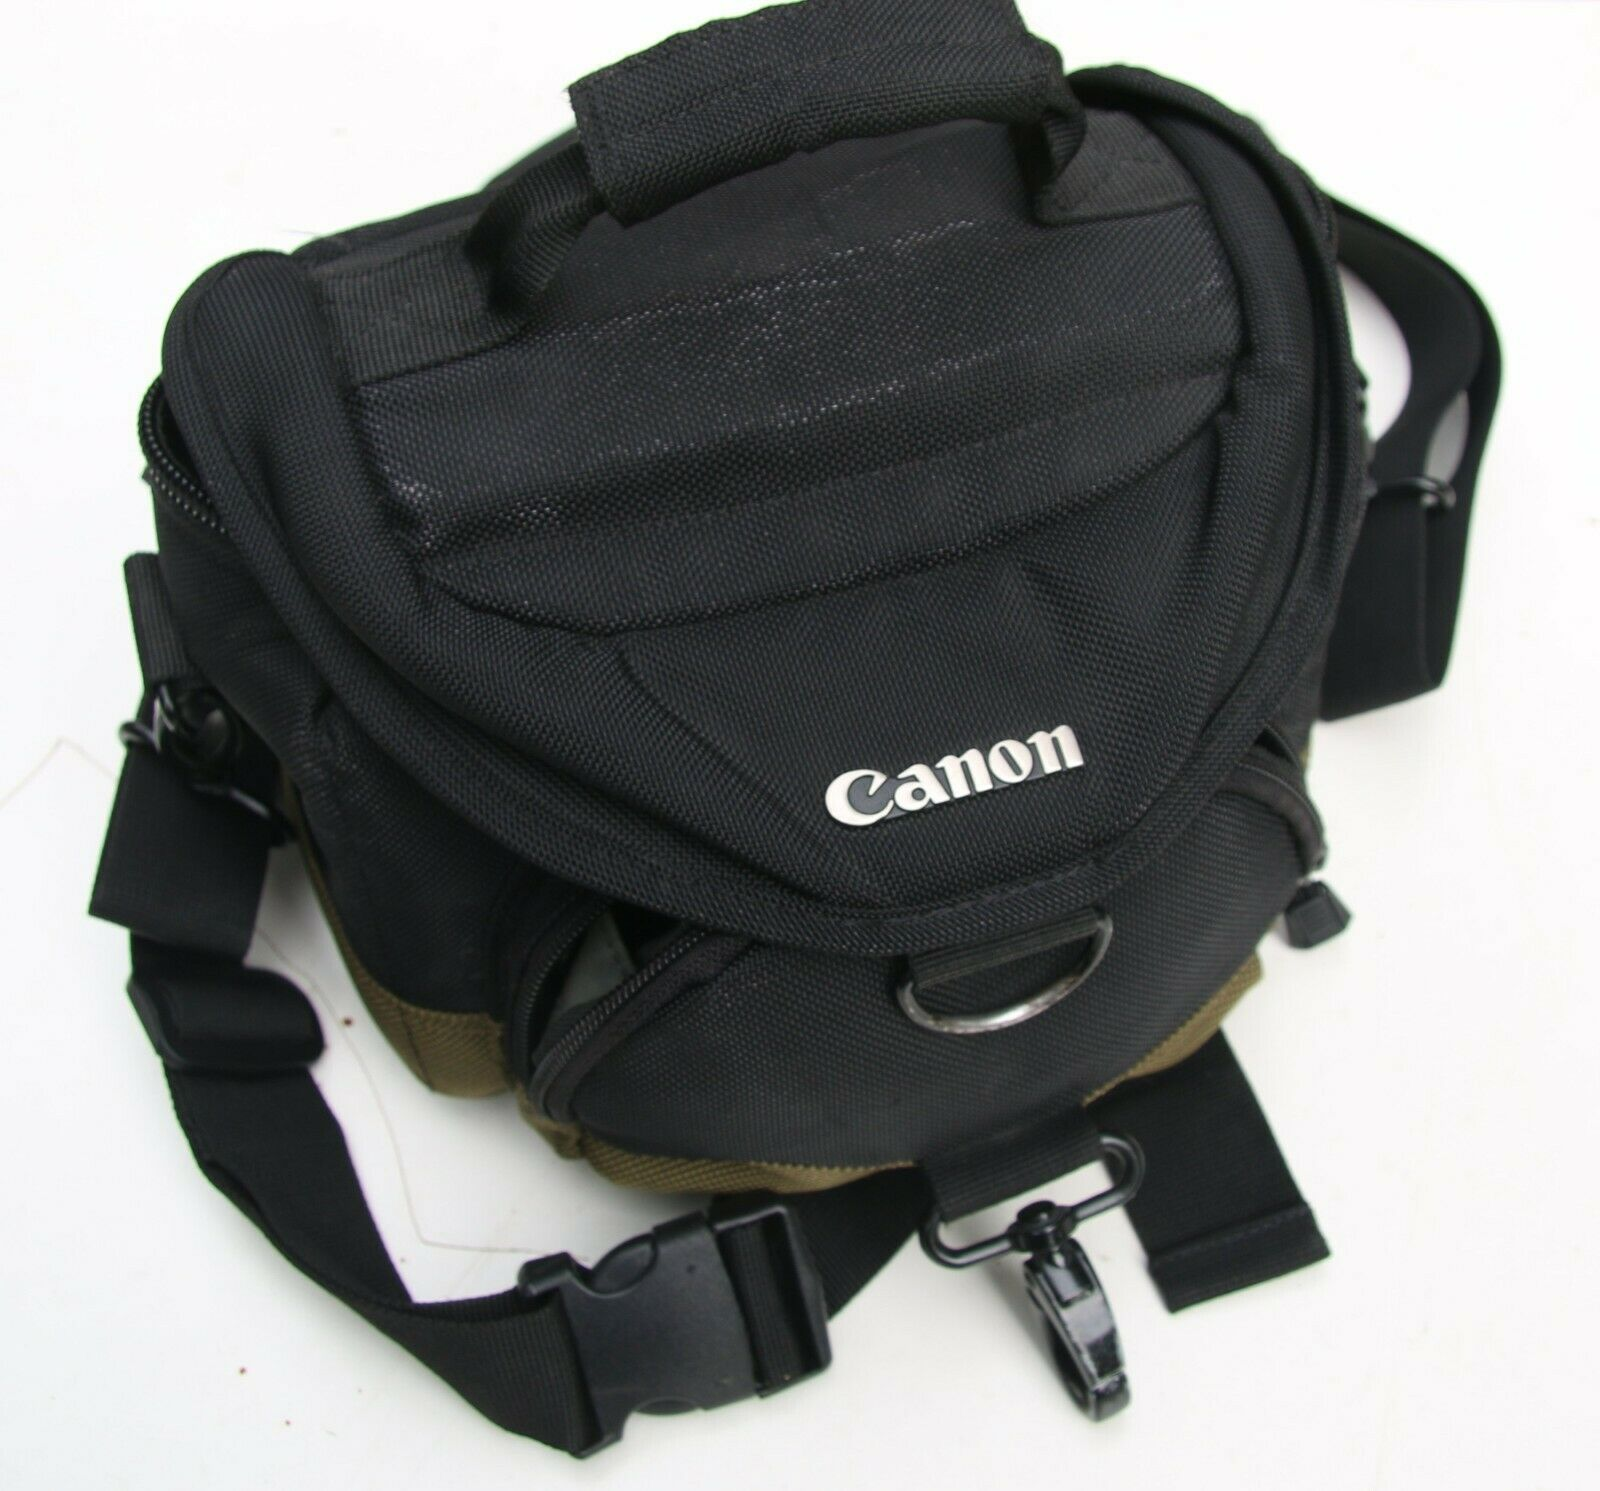 Canon padded Equipment / Gadget Bag with strap in excellent condition.